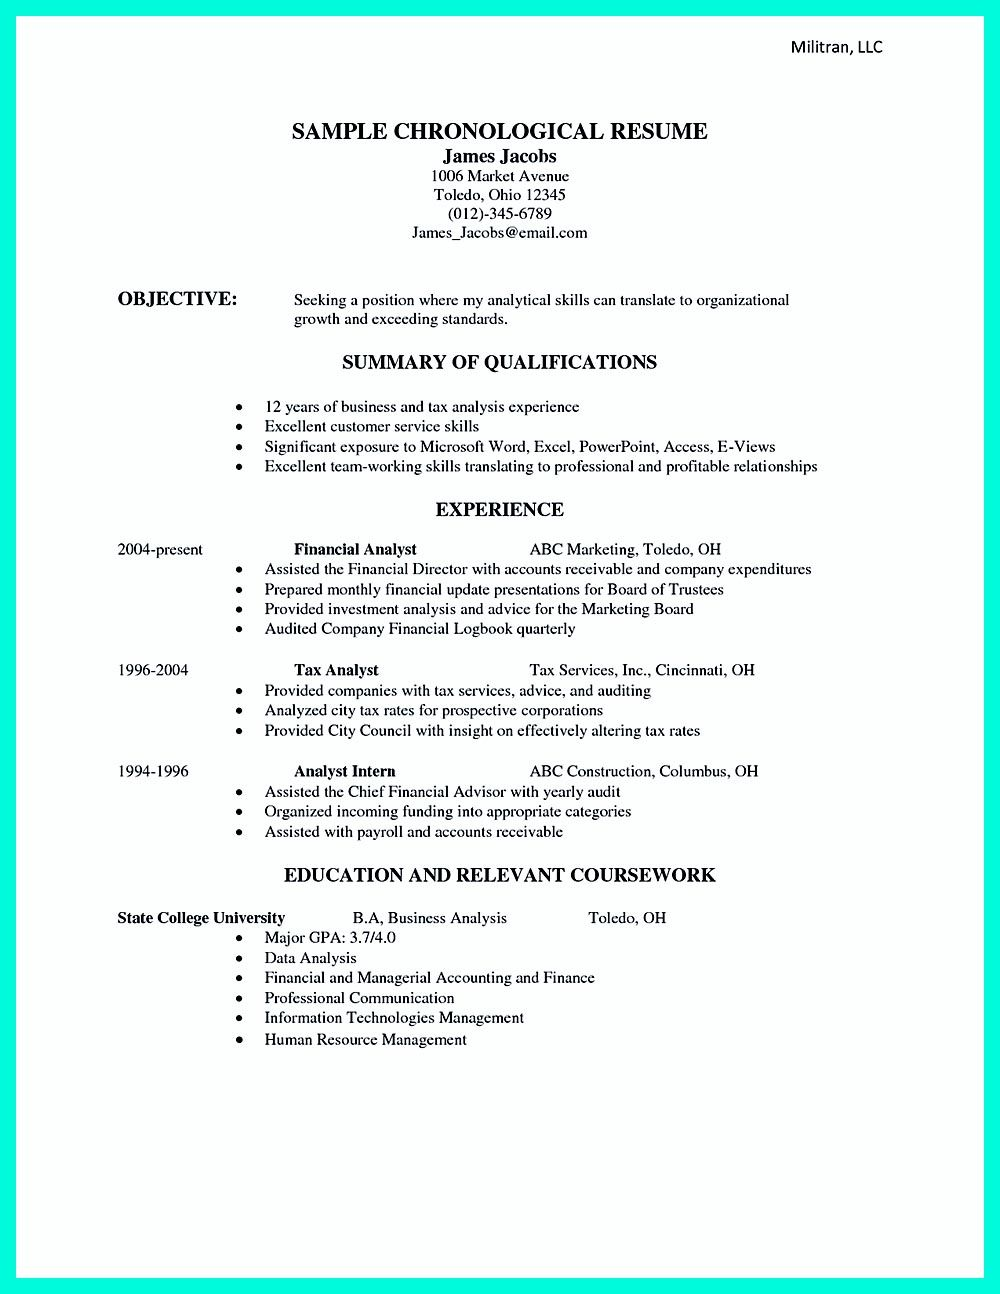 chronological resume is needed by people in making them